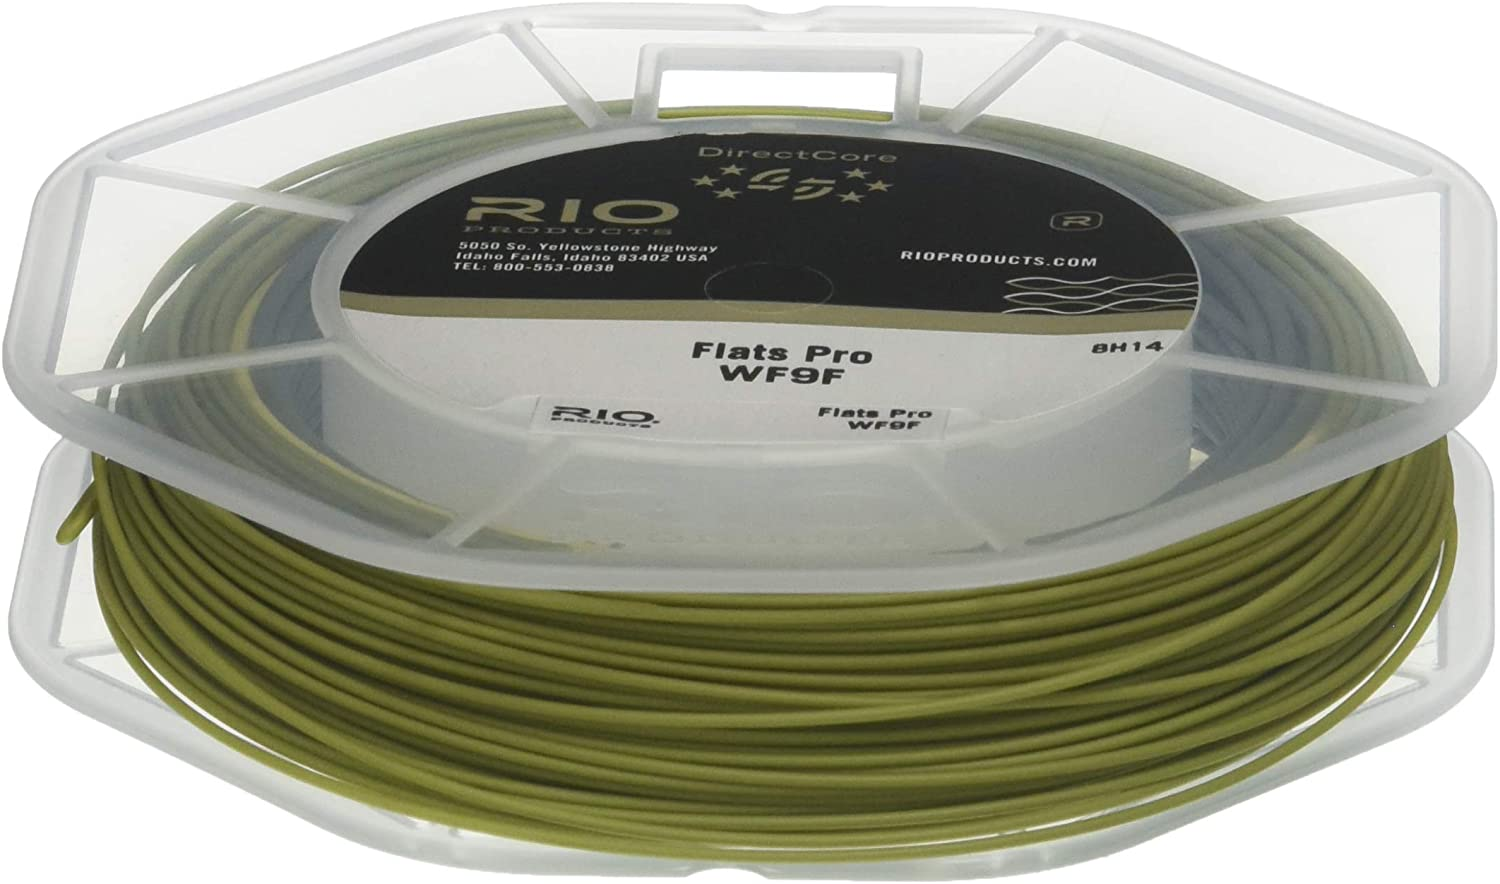 RIO Products DirectCore Flats Pro Fly Challenge the Safety and trust lowest price of Japan Line